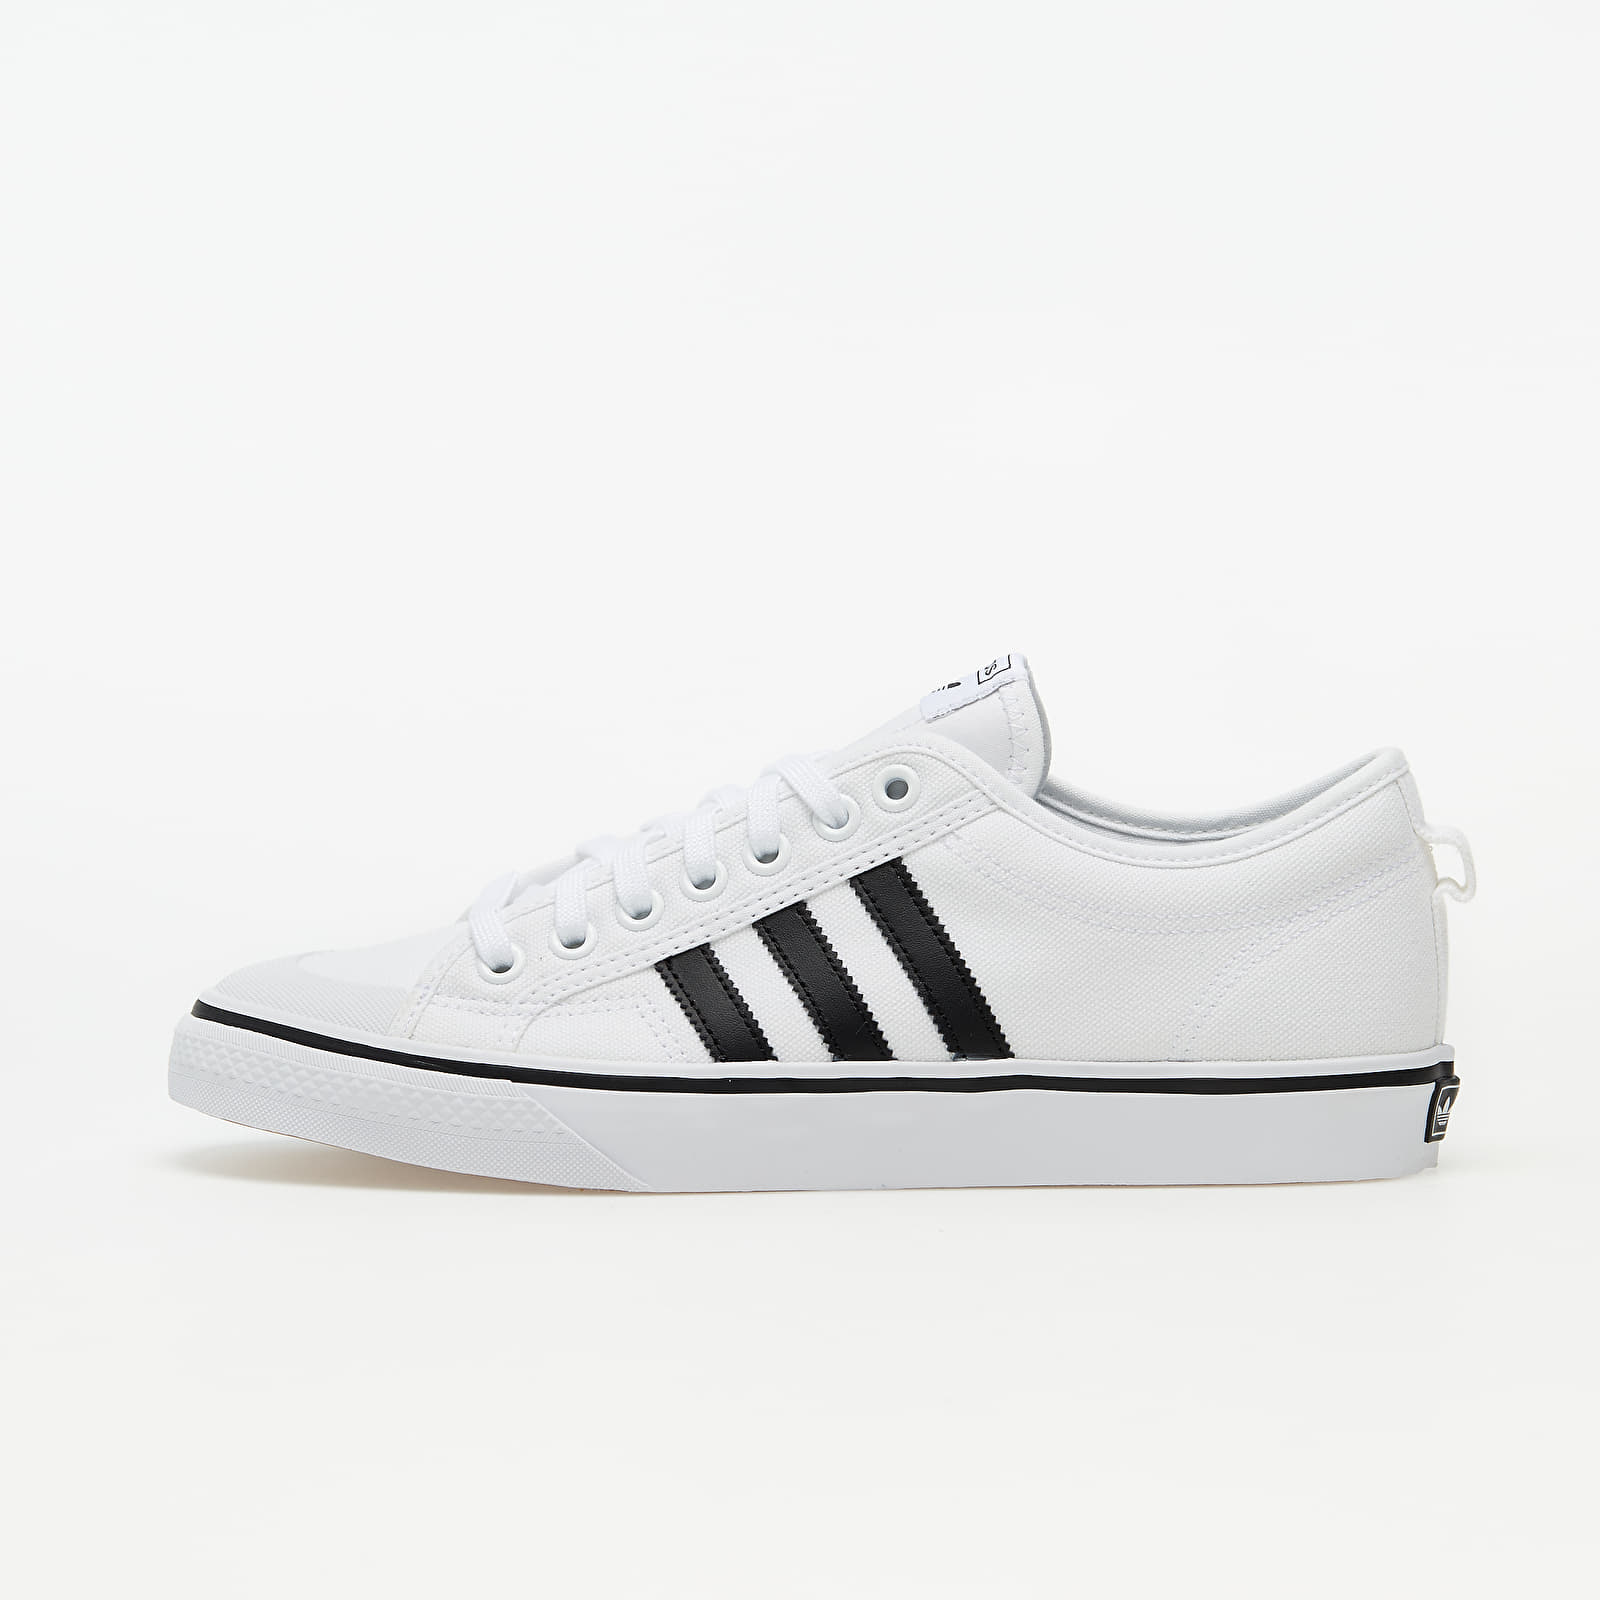 adidas Nizza Ftw White/ Core Black/ Ftw White EUR 42